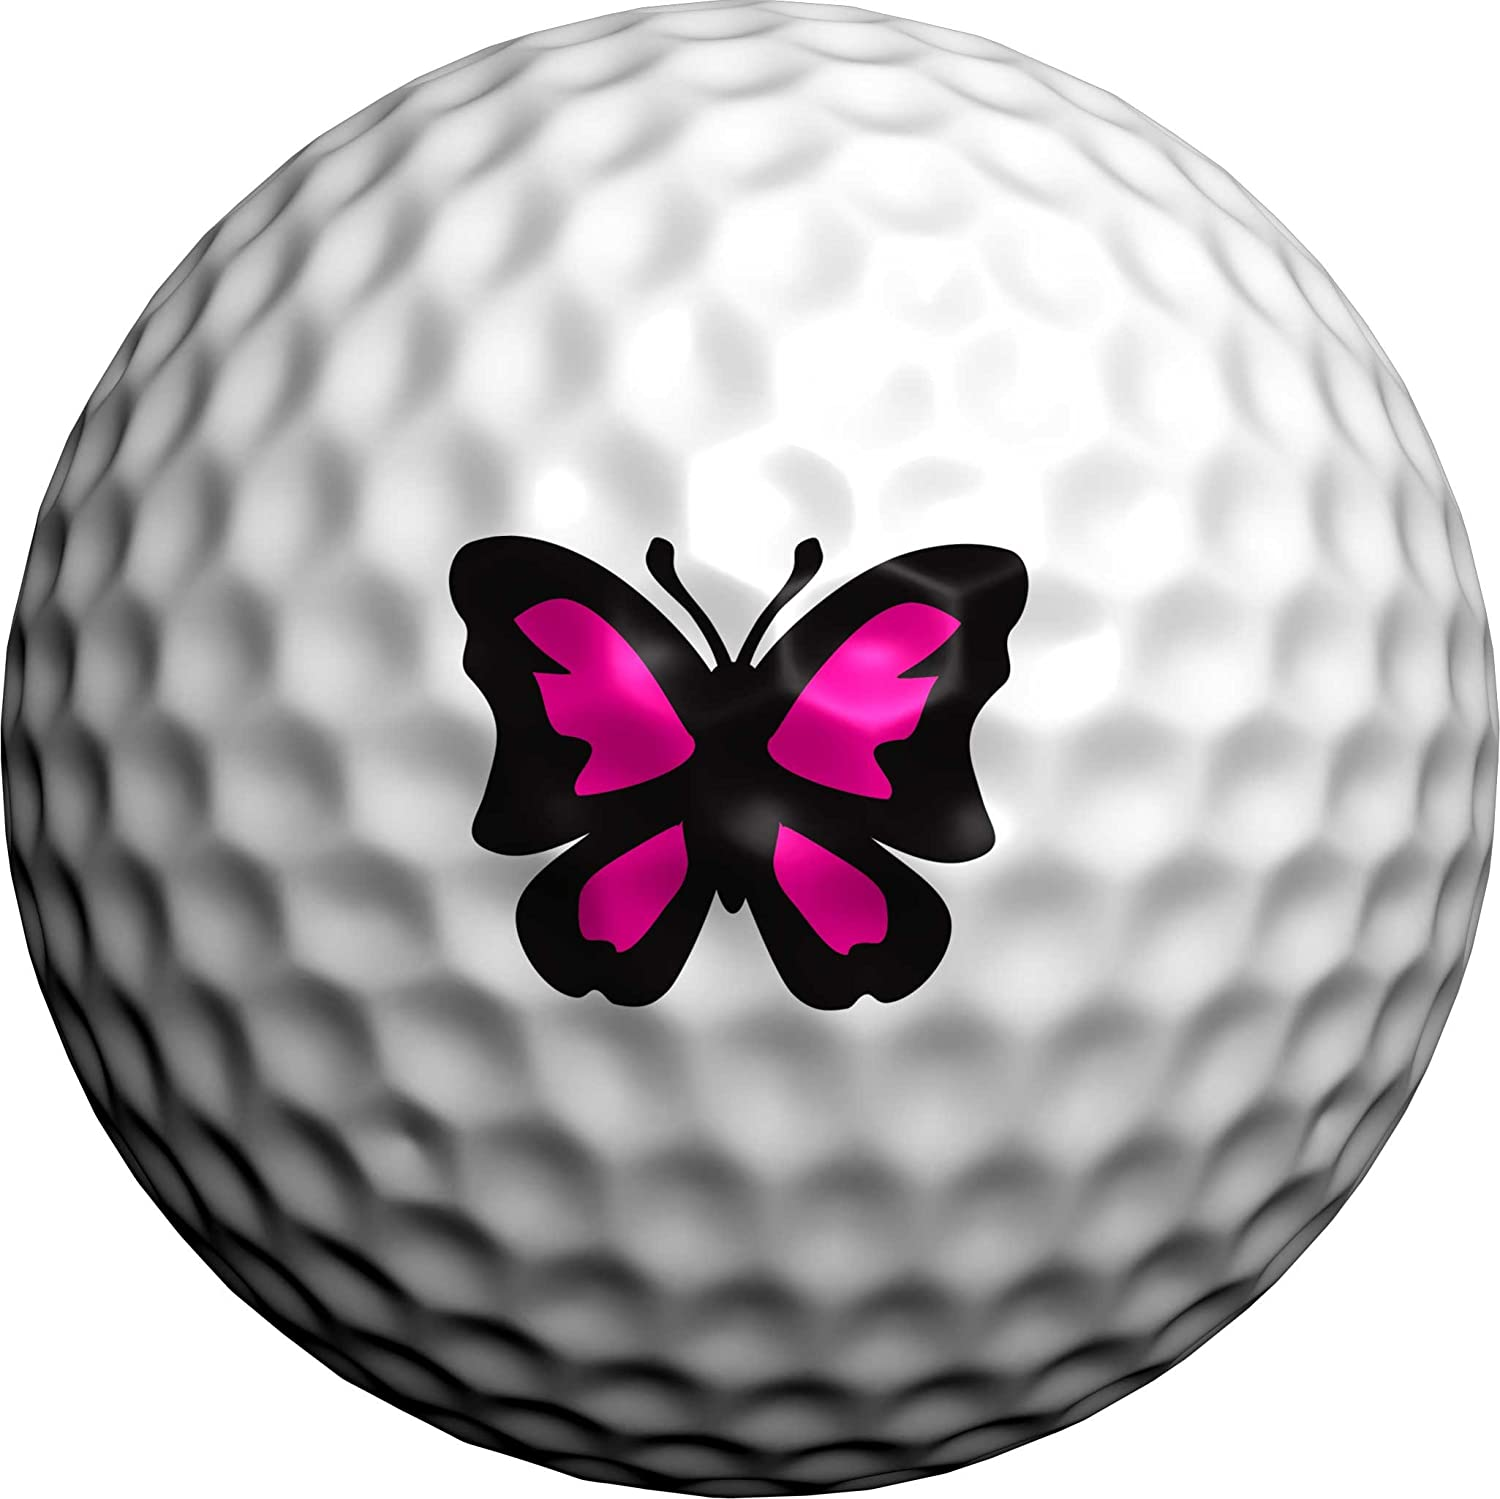 NEW before Max 41% OFF selling ☆ Golfdotz Majestic Butterfly